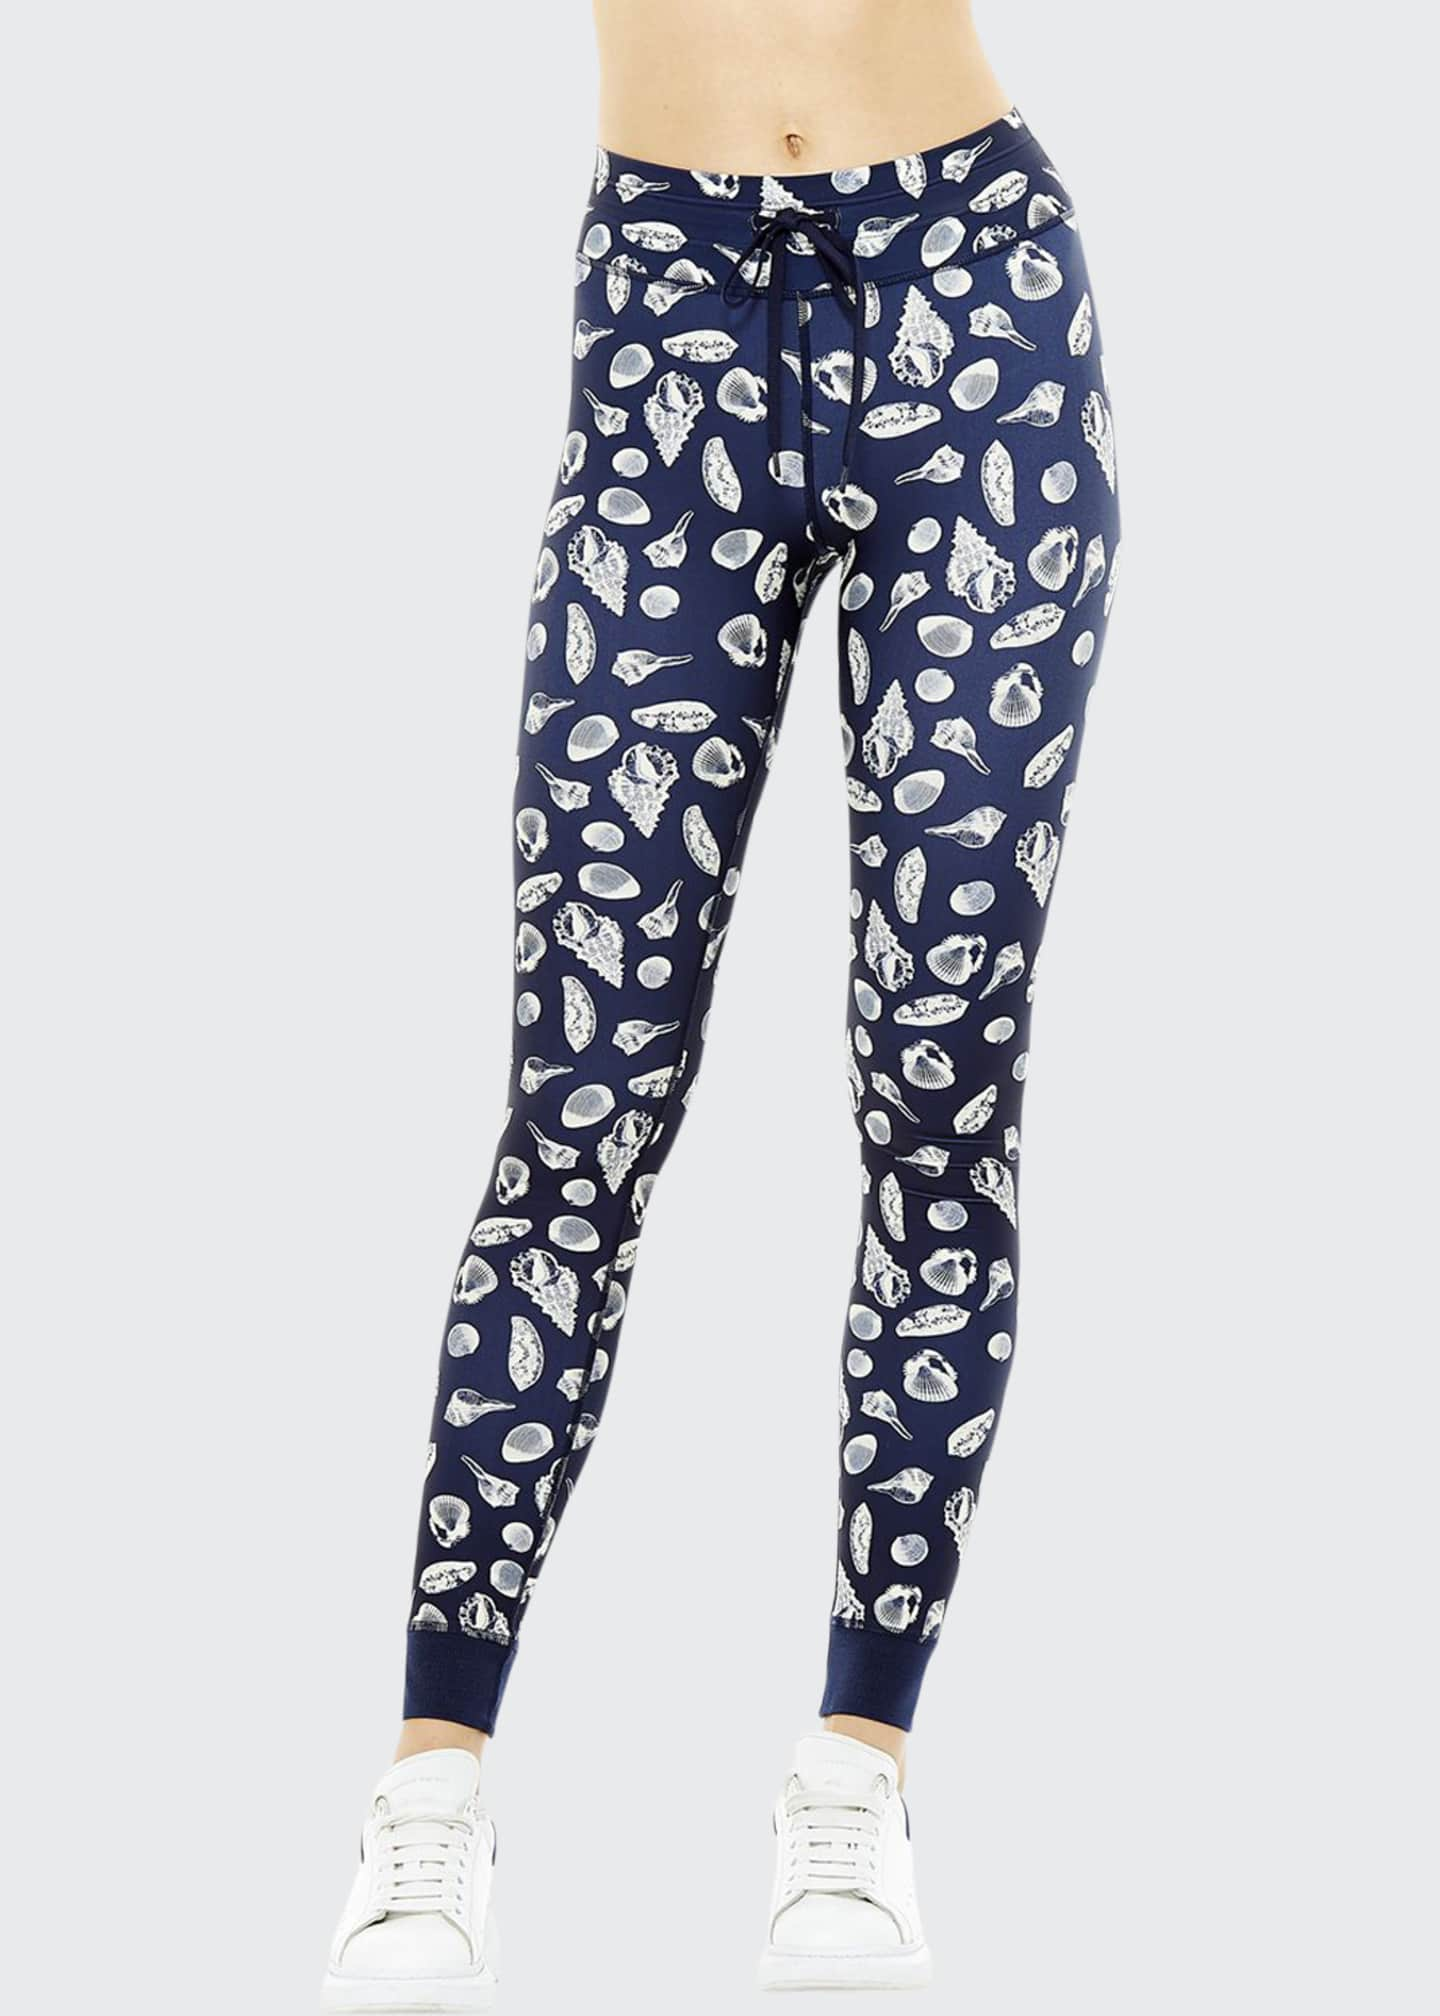 The Upside Shells Yoga Leggings